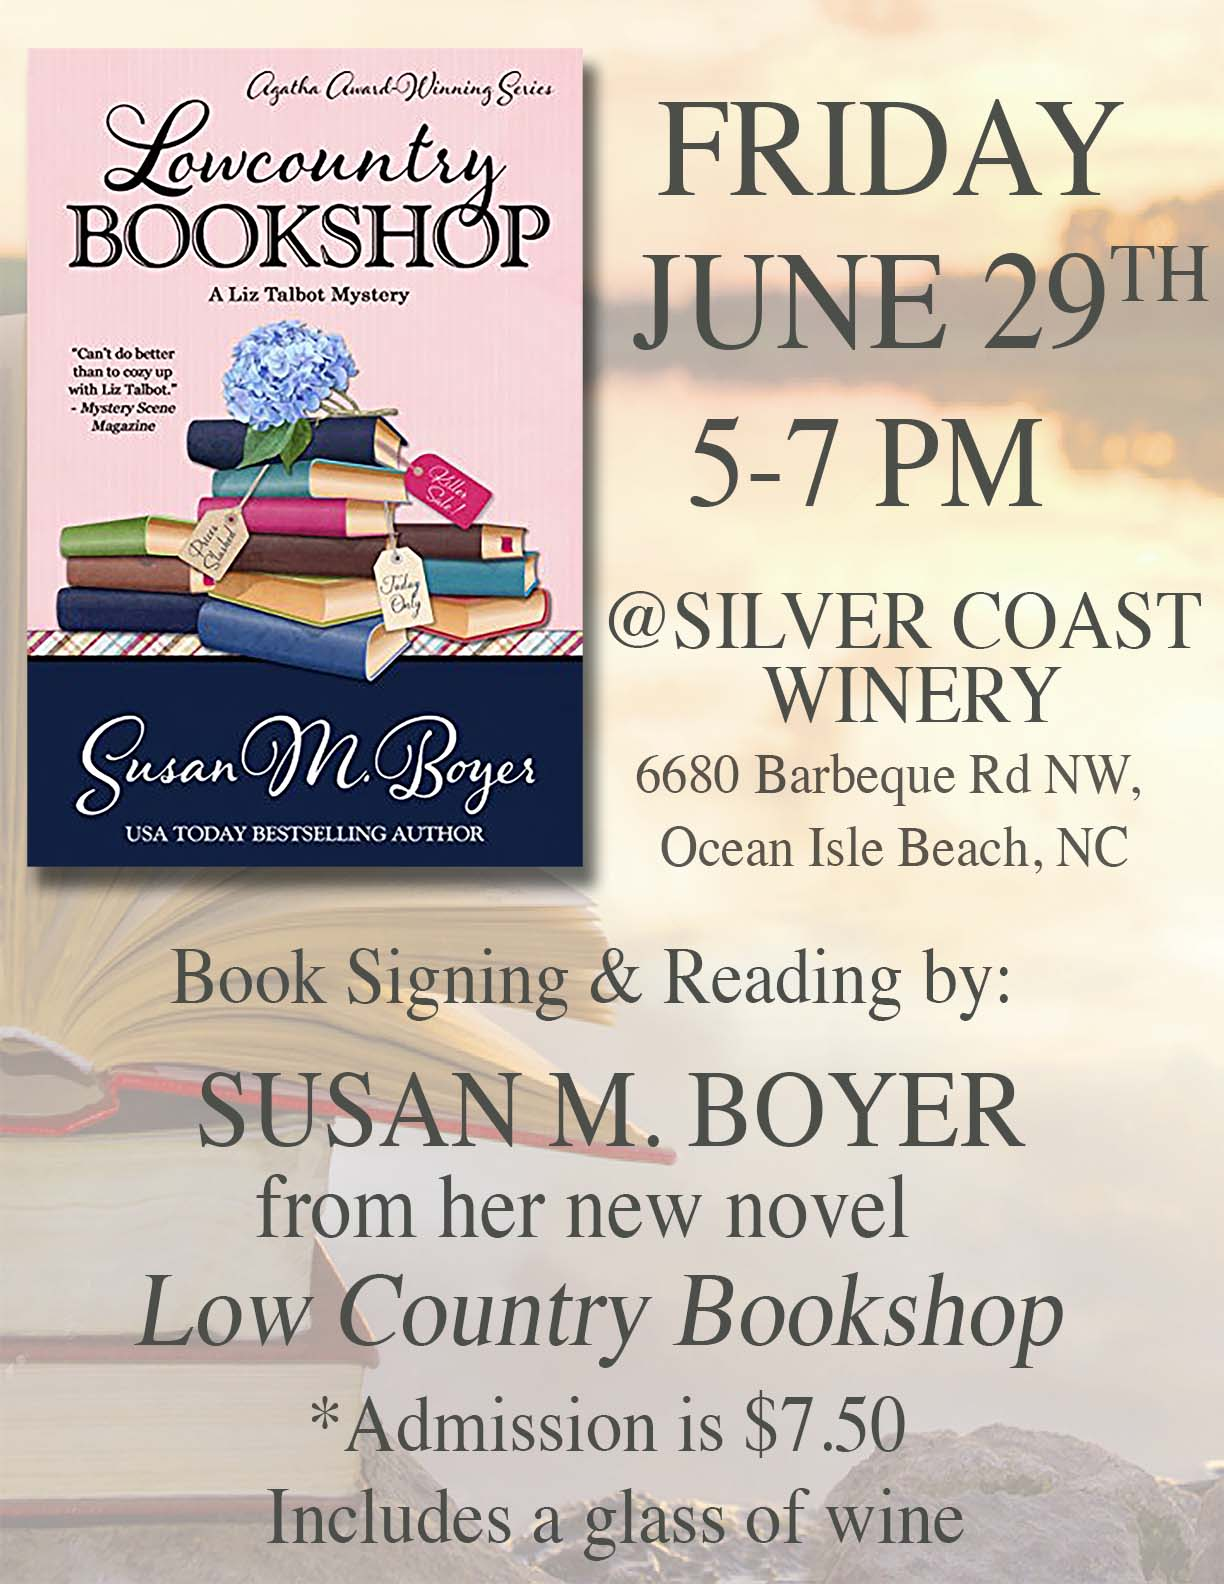 Susan M. Boyer Signing at Silver Coast Winery